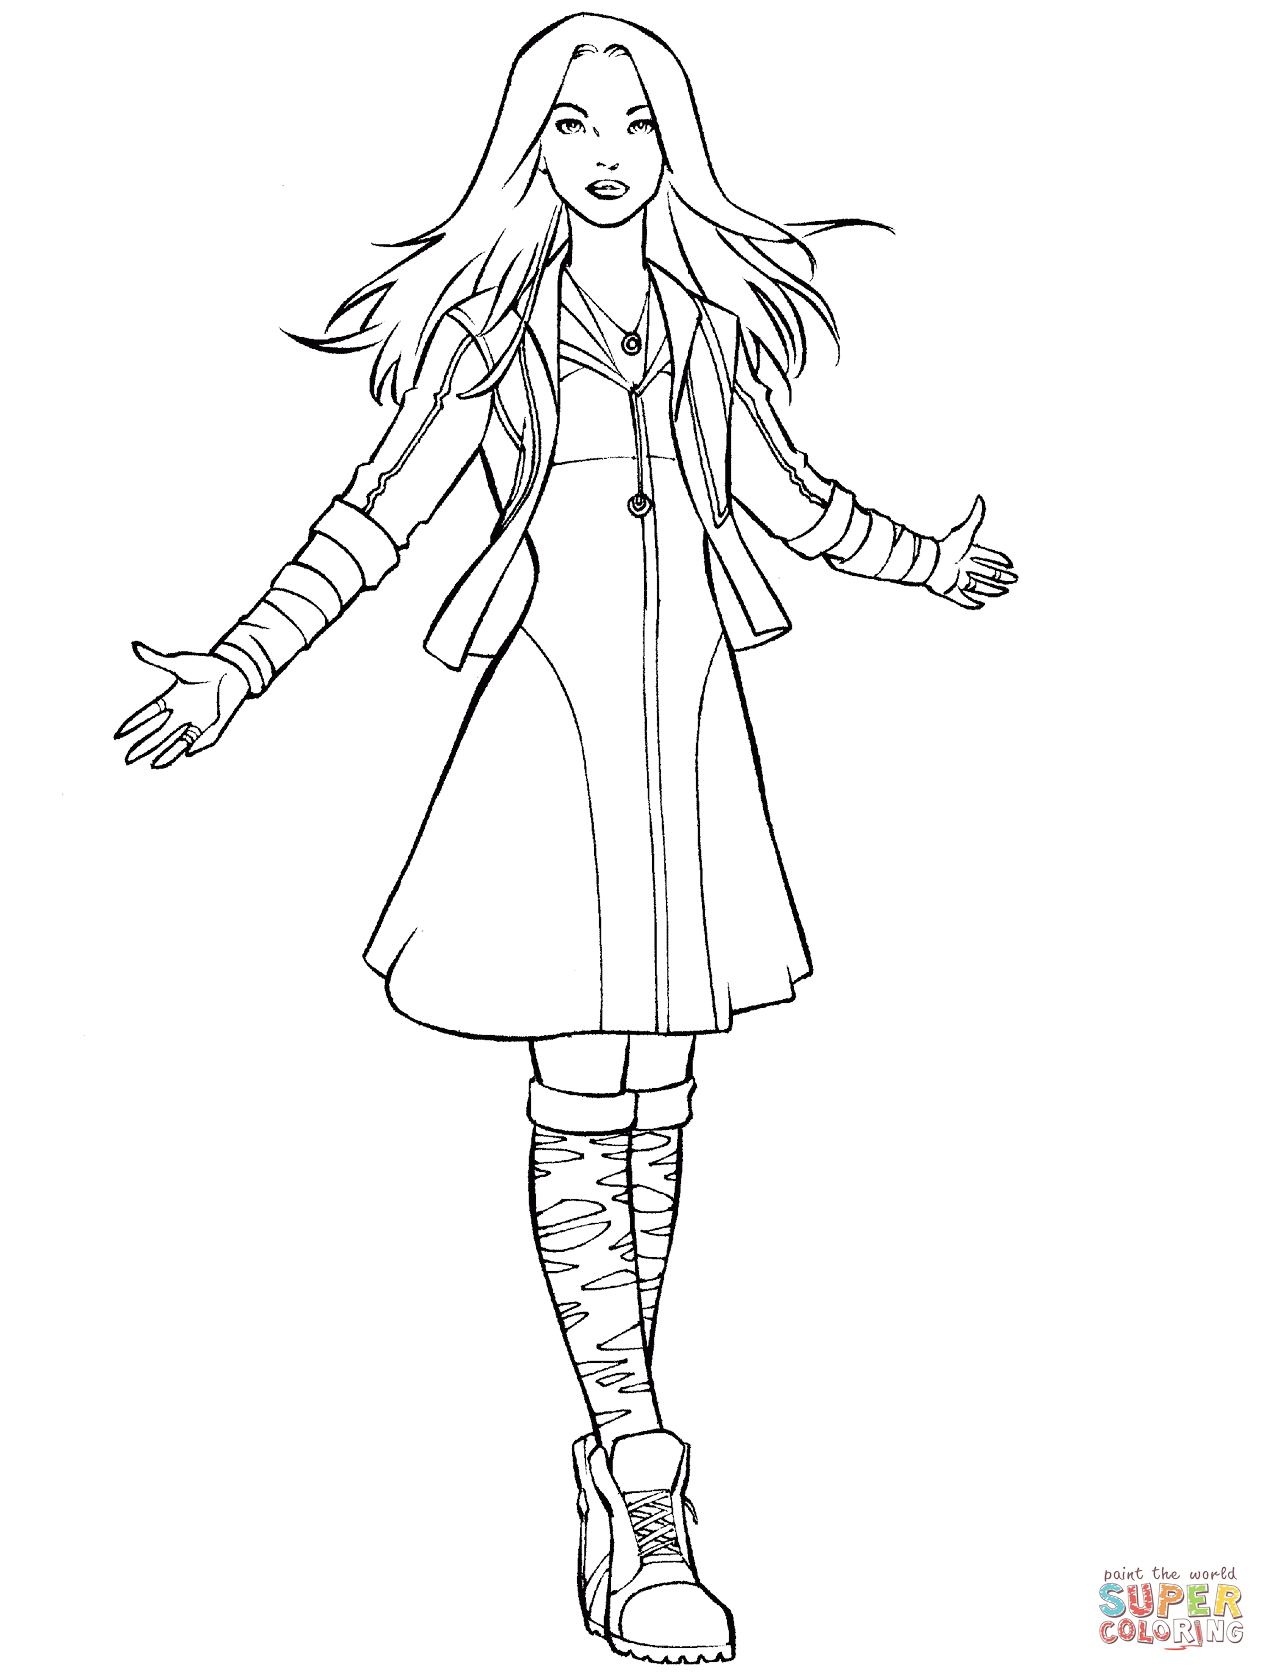 Avengers Scarlet Witch Coloring Page | Free Printable Coloring Pages - Free Printable Pictures Of Witches